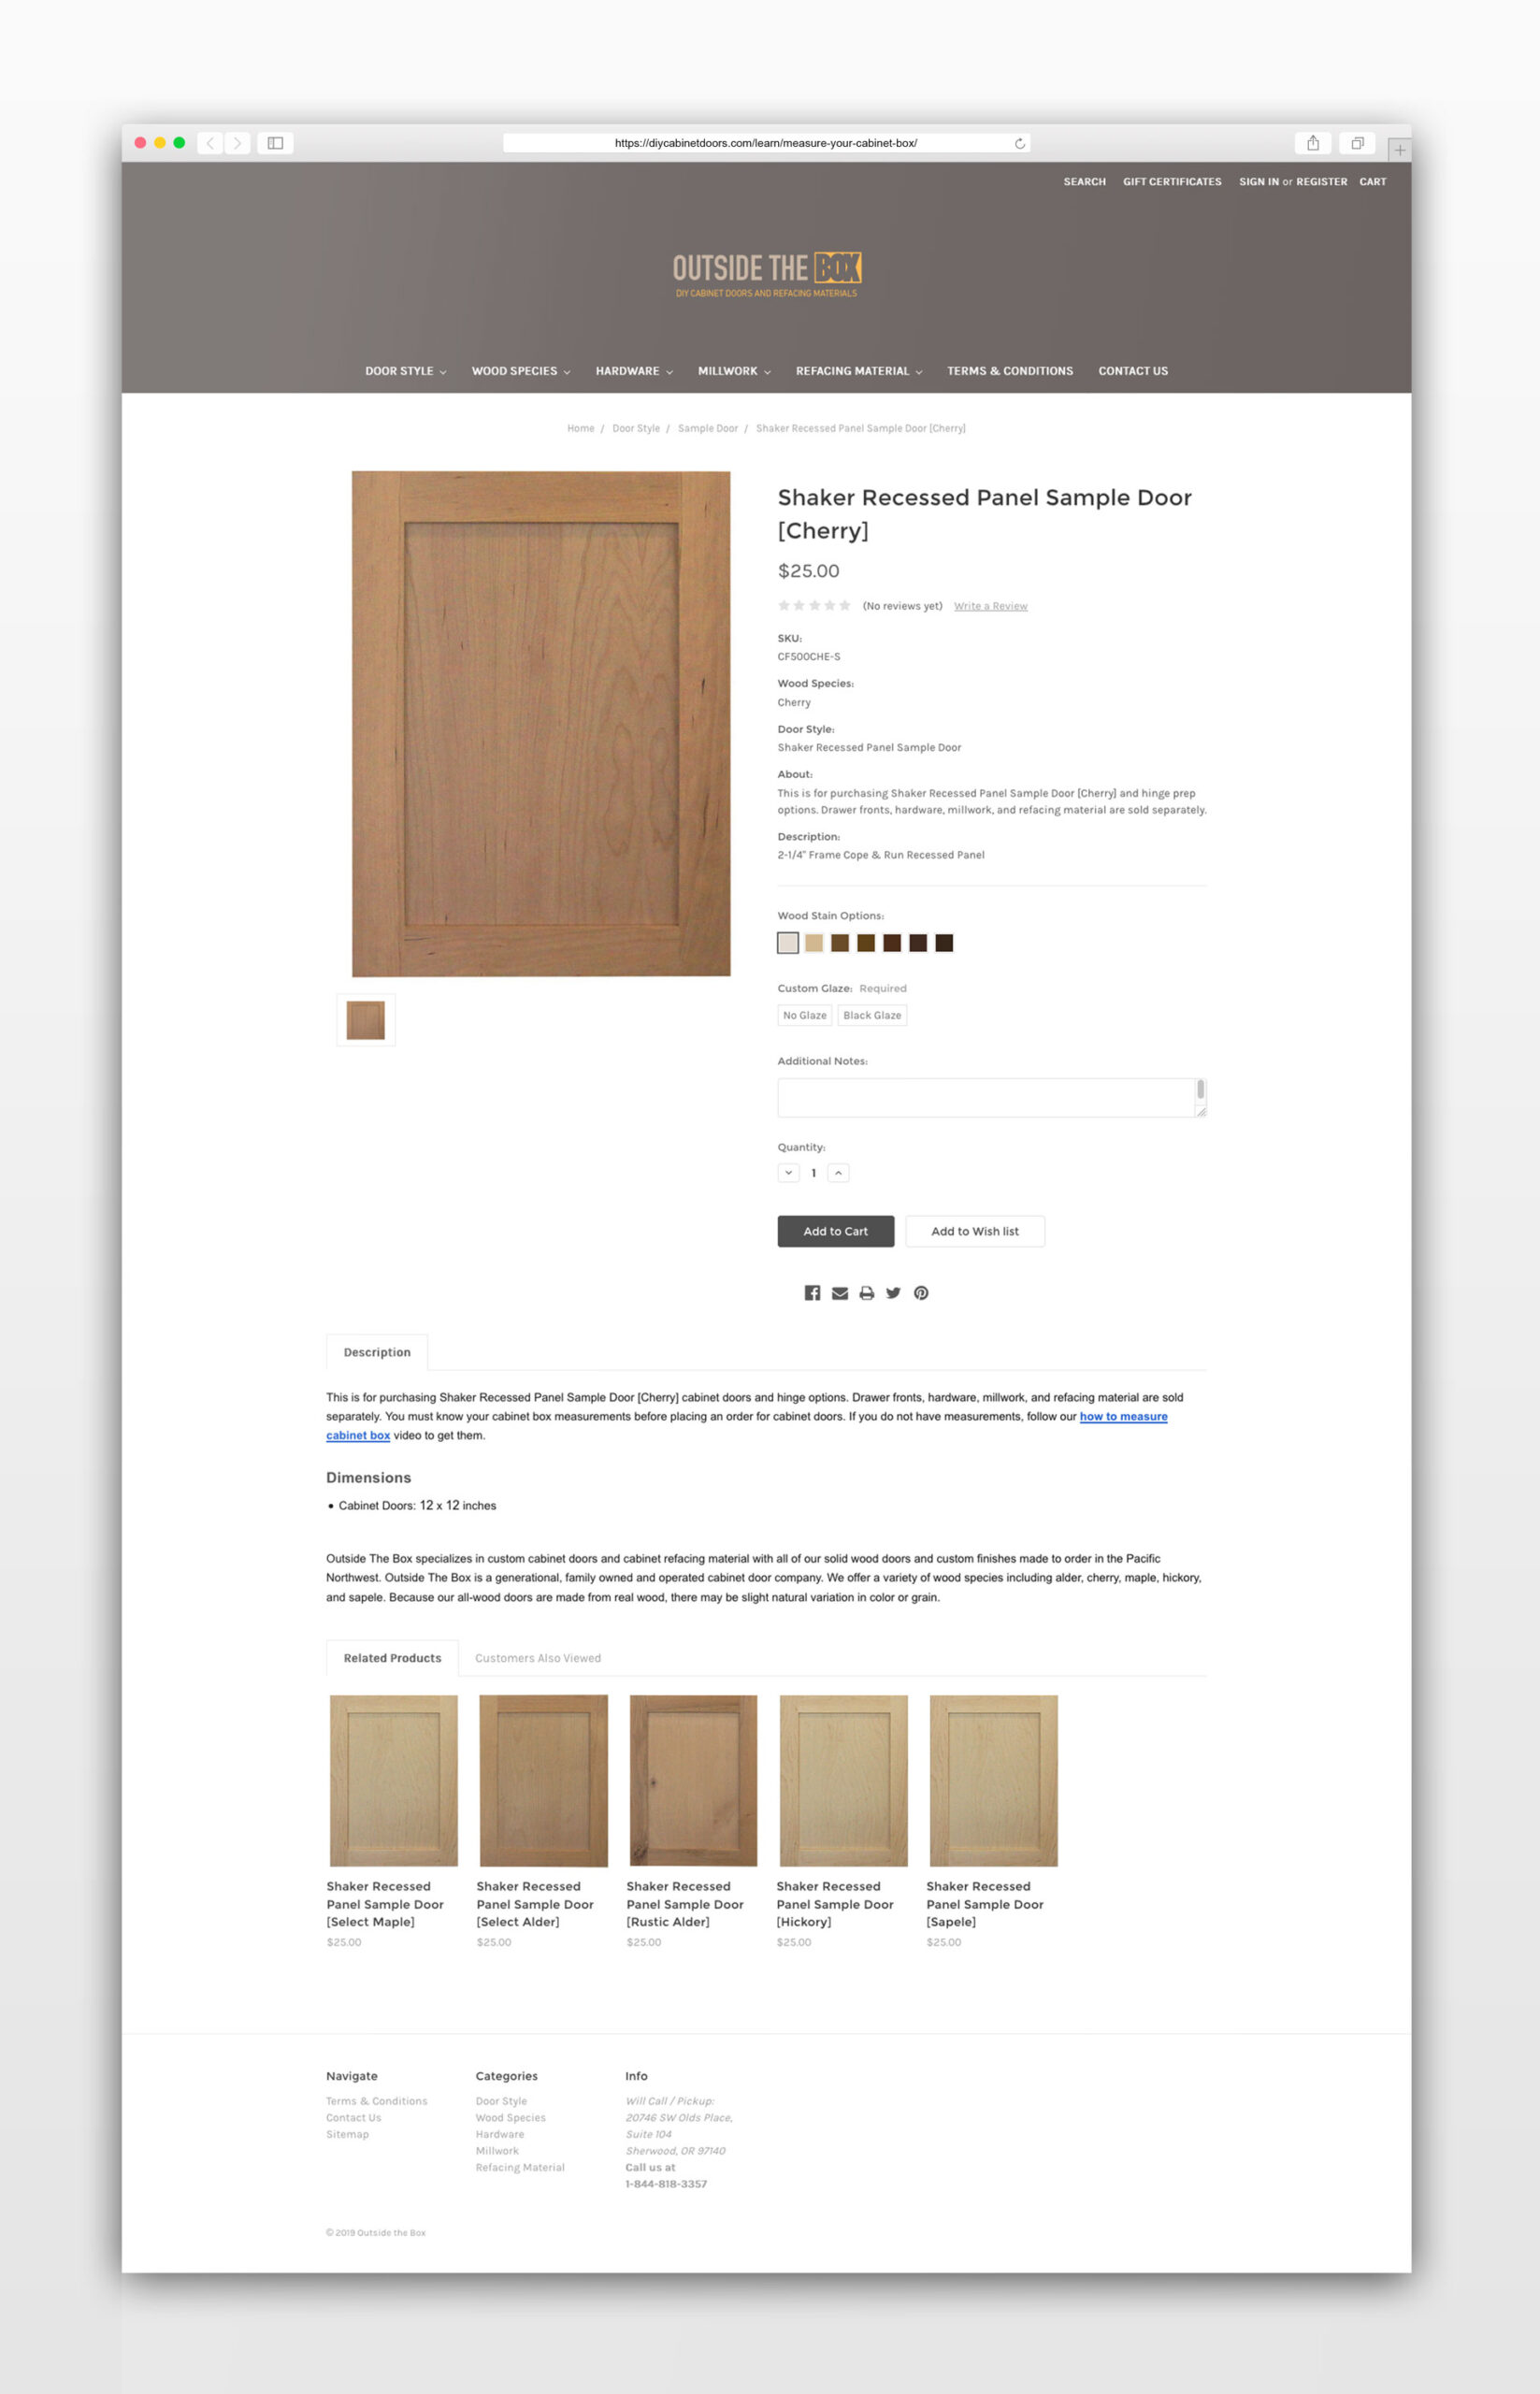 Outside The Box - DIY Cabinet Doors Sample Door Order - Web Design by Graphicsbyte Creative